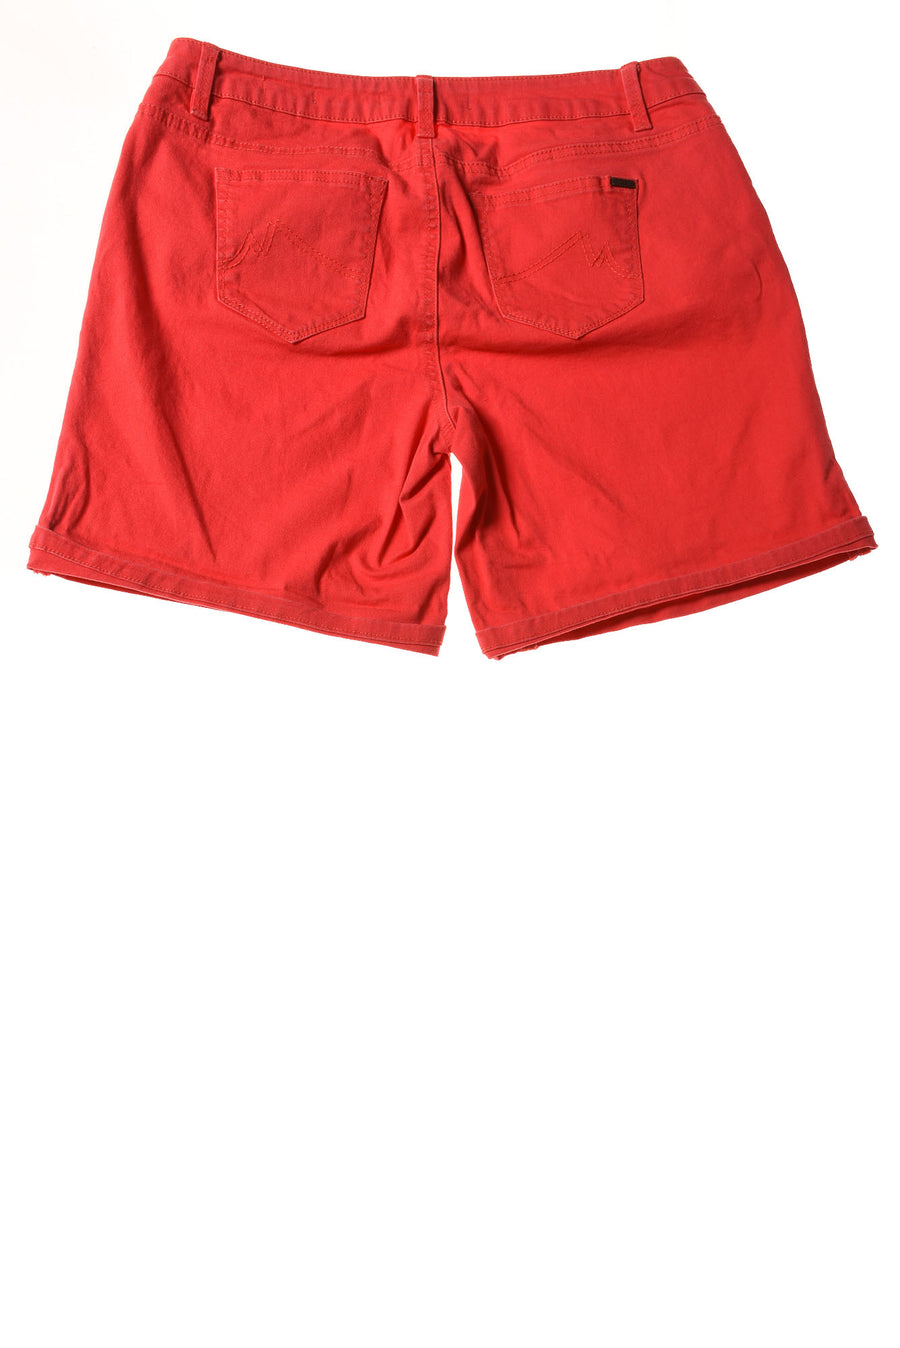 USED Max Jeans Women's Shorts 10 Red